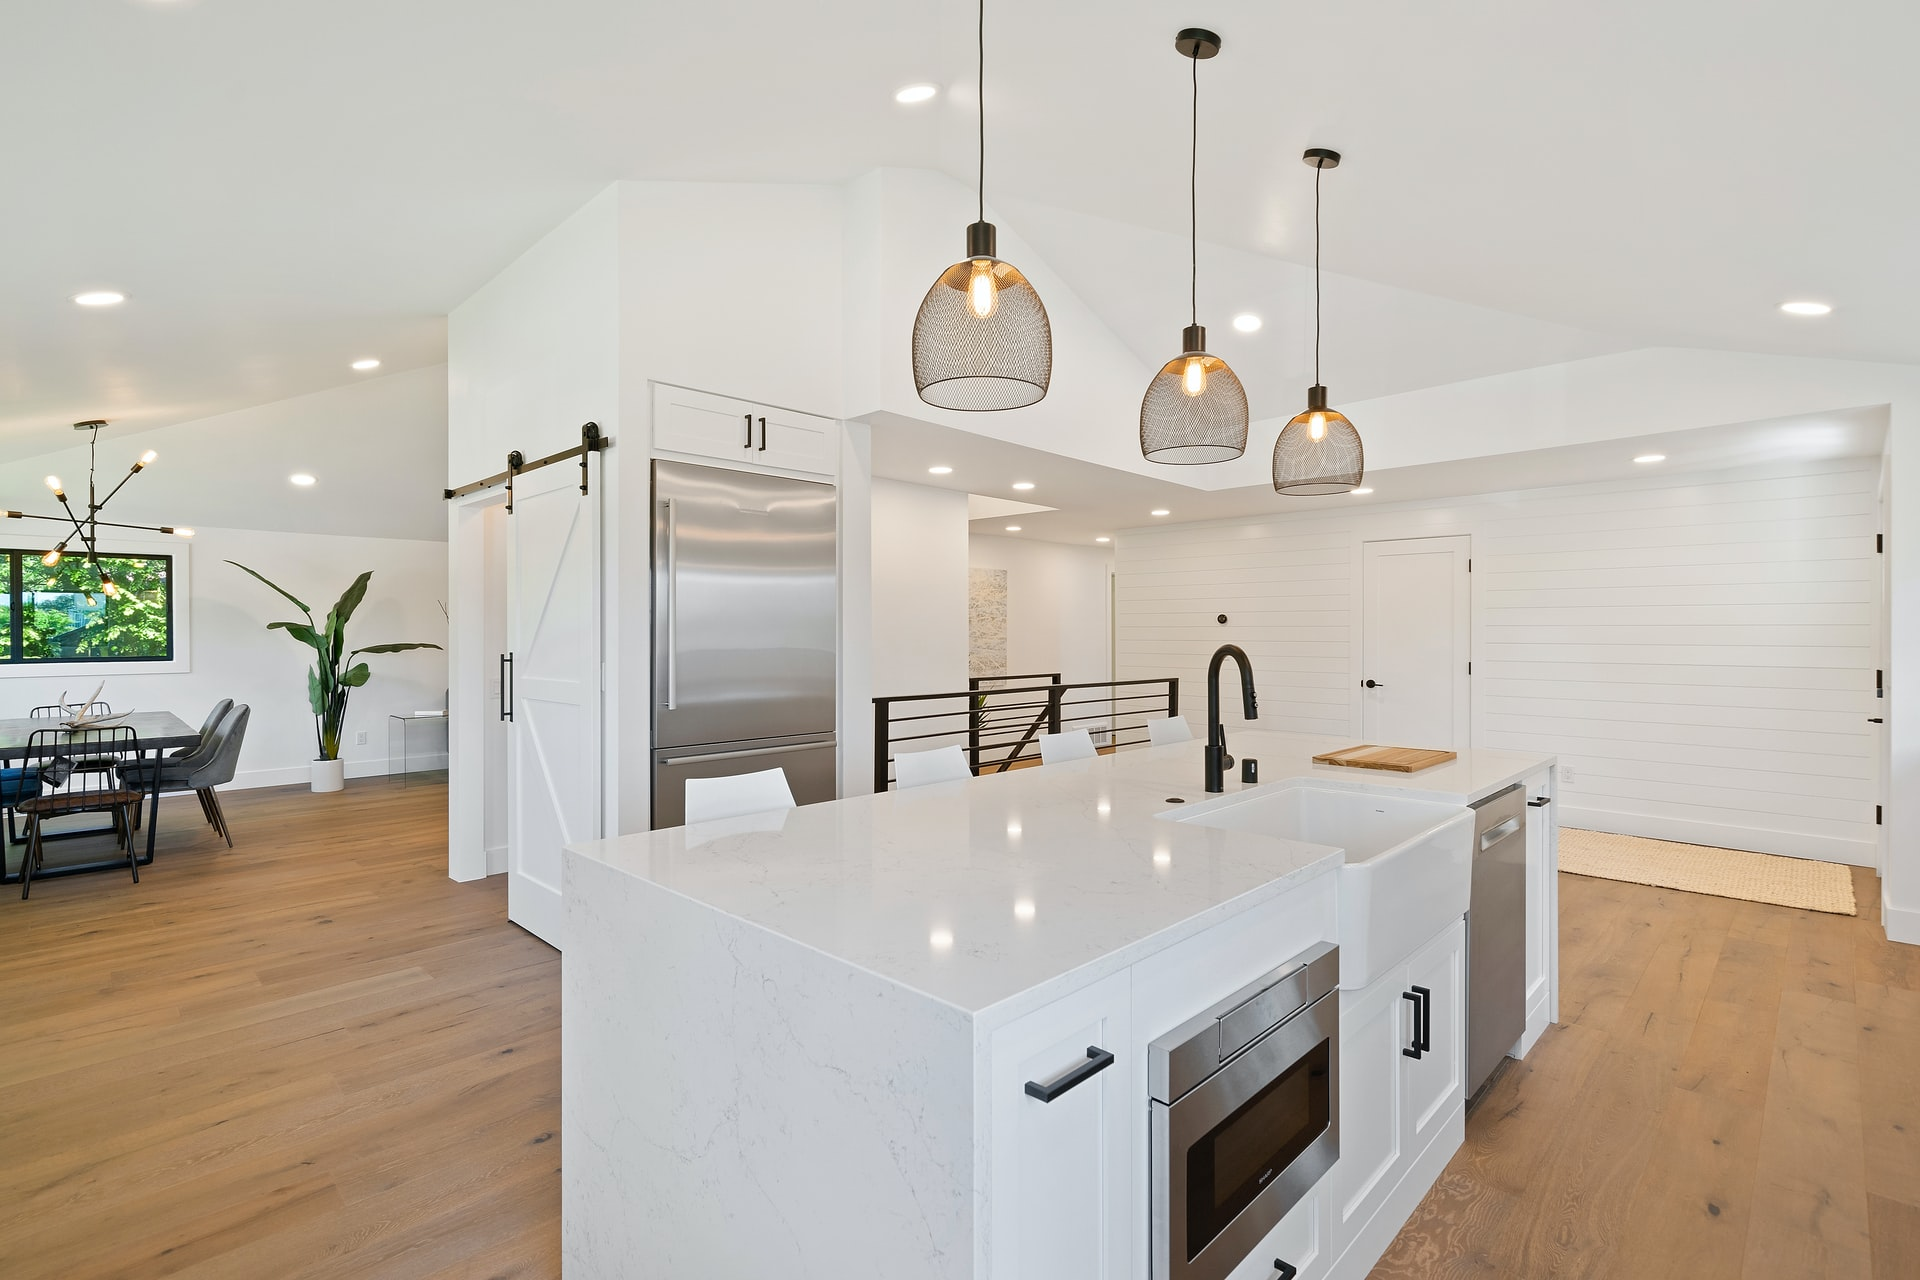 Ways COVID-19 Will Affect Future Home Design and What to Look For